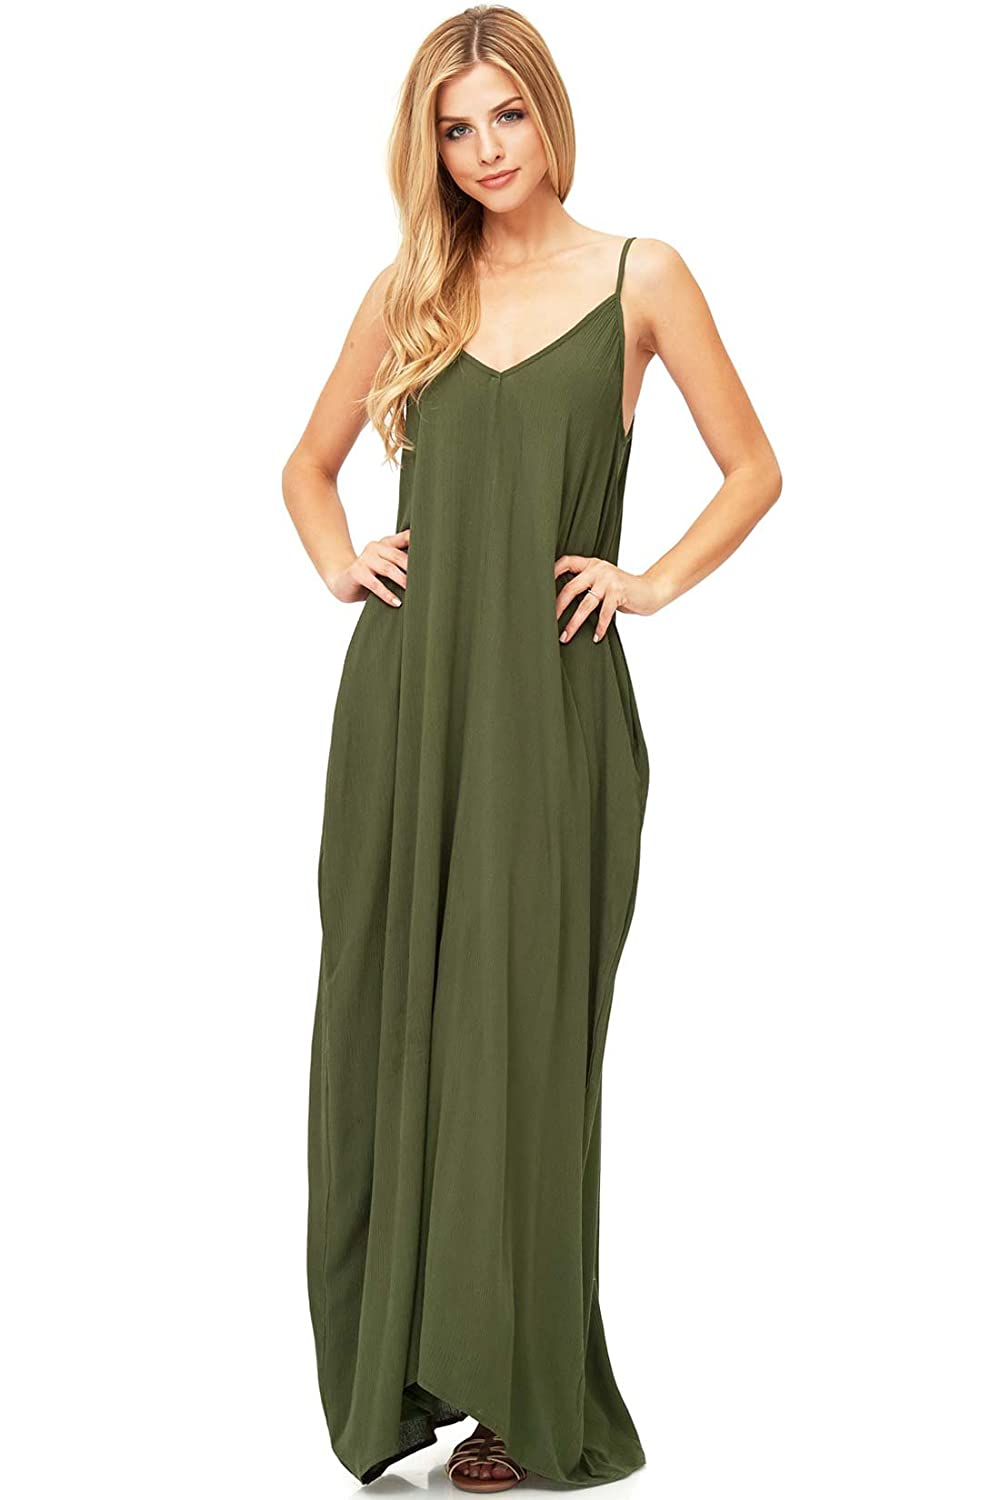 45c4887aa5eaf Love Stitch Women's Light Linen Simple Maxi Dress at Amazon Women's  Clothing store: